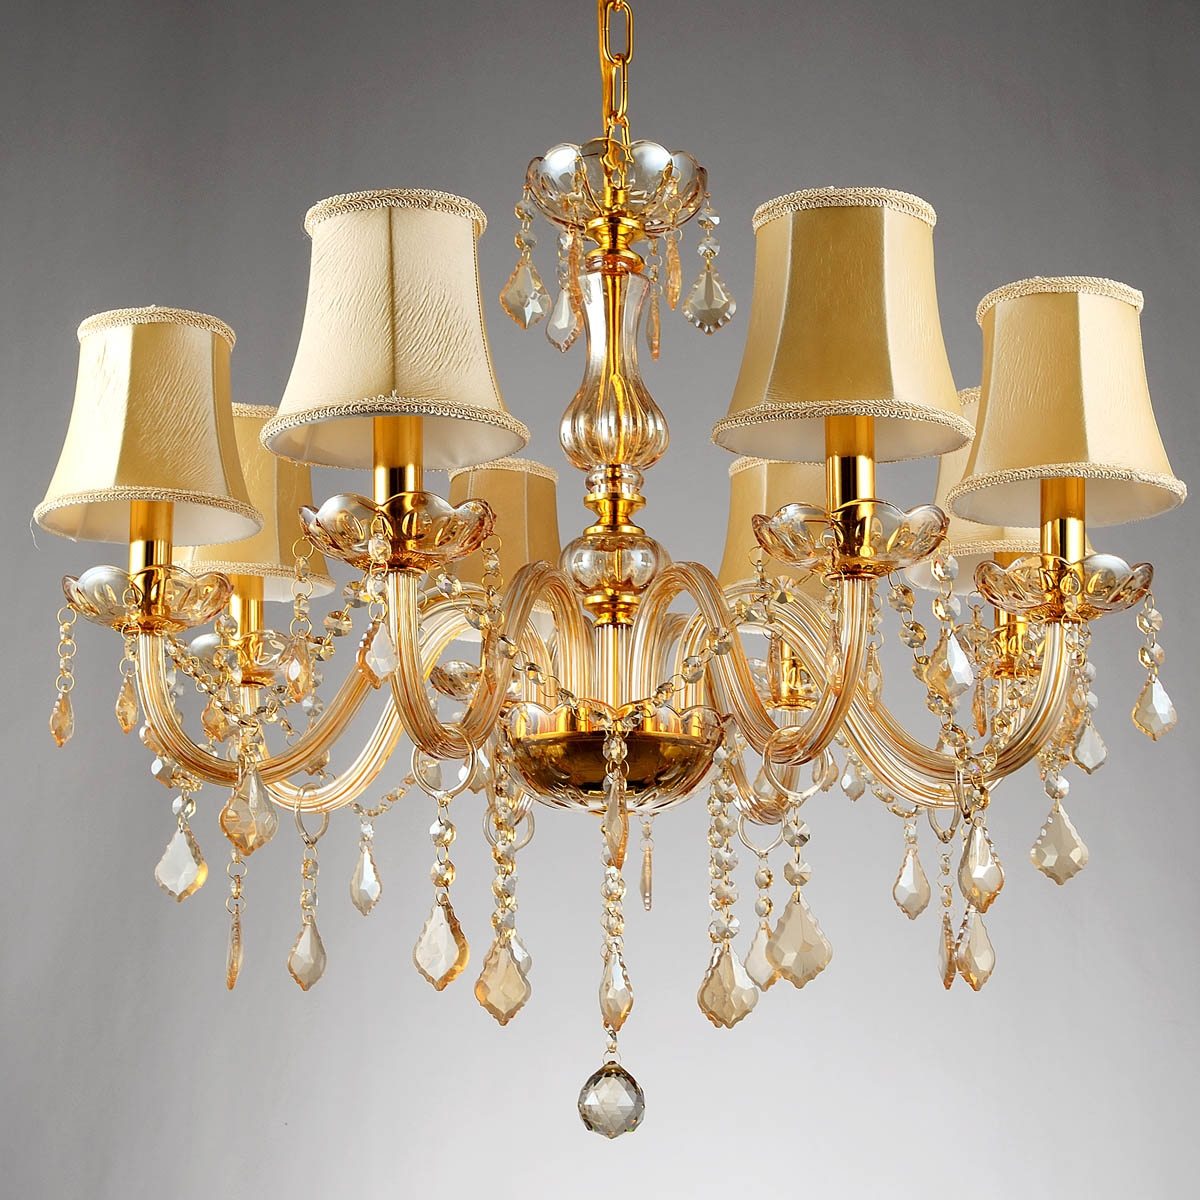 Popular Champagne Chandeliers Buy Cheap Champagne Chandeliers Lots Intended For Crystal Gold Chandelier (#11 of 12)